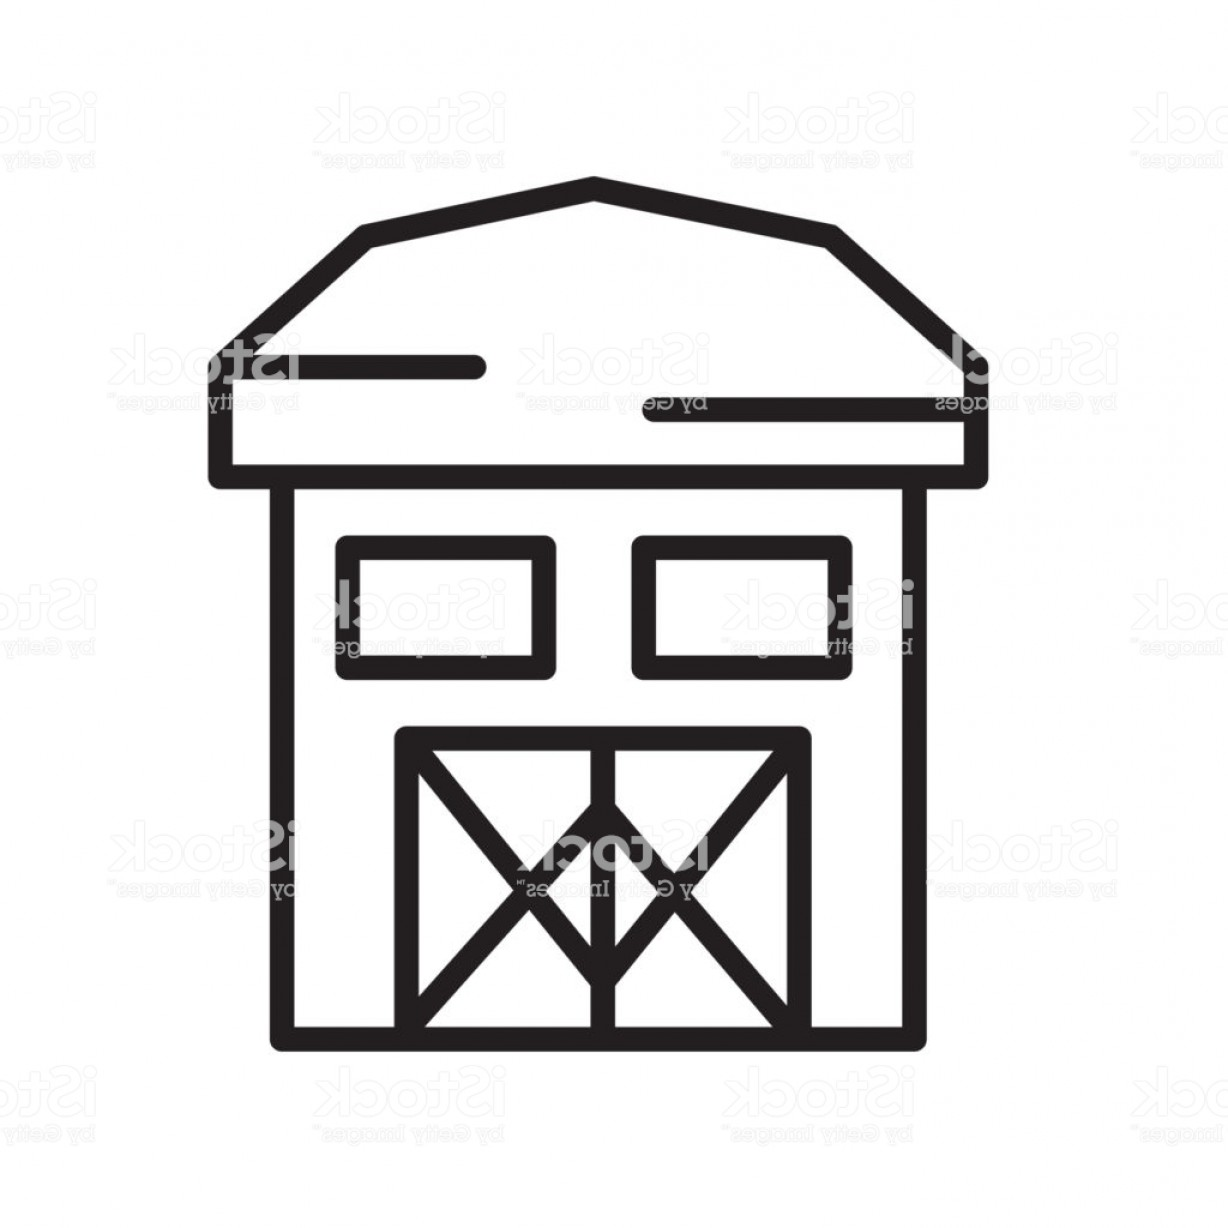 Barn Outline Vector: Barn Icon Vector Sign And Symbol Isolated On White Background Barn Logo Concept Gm